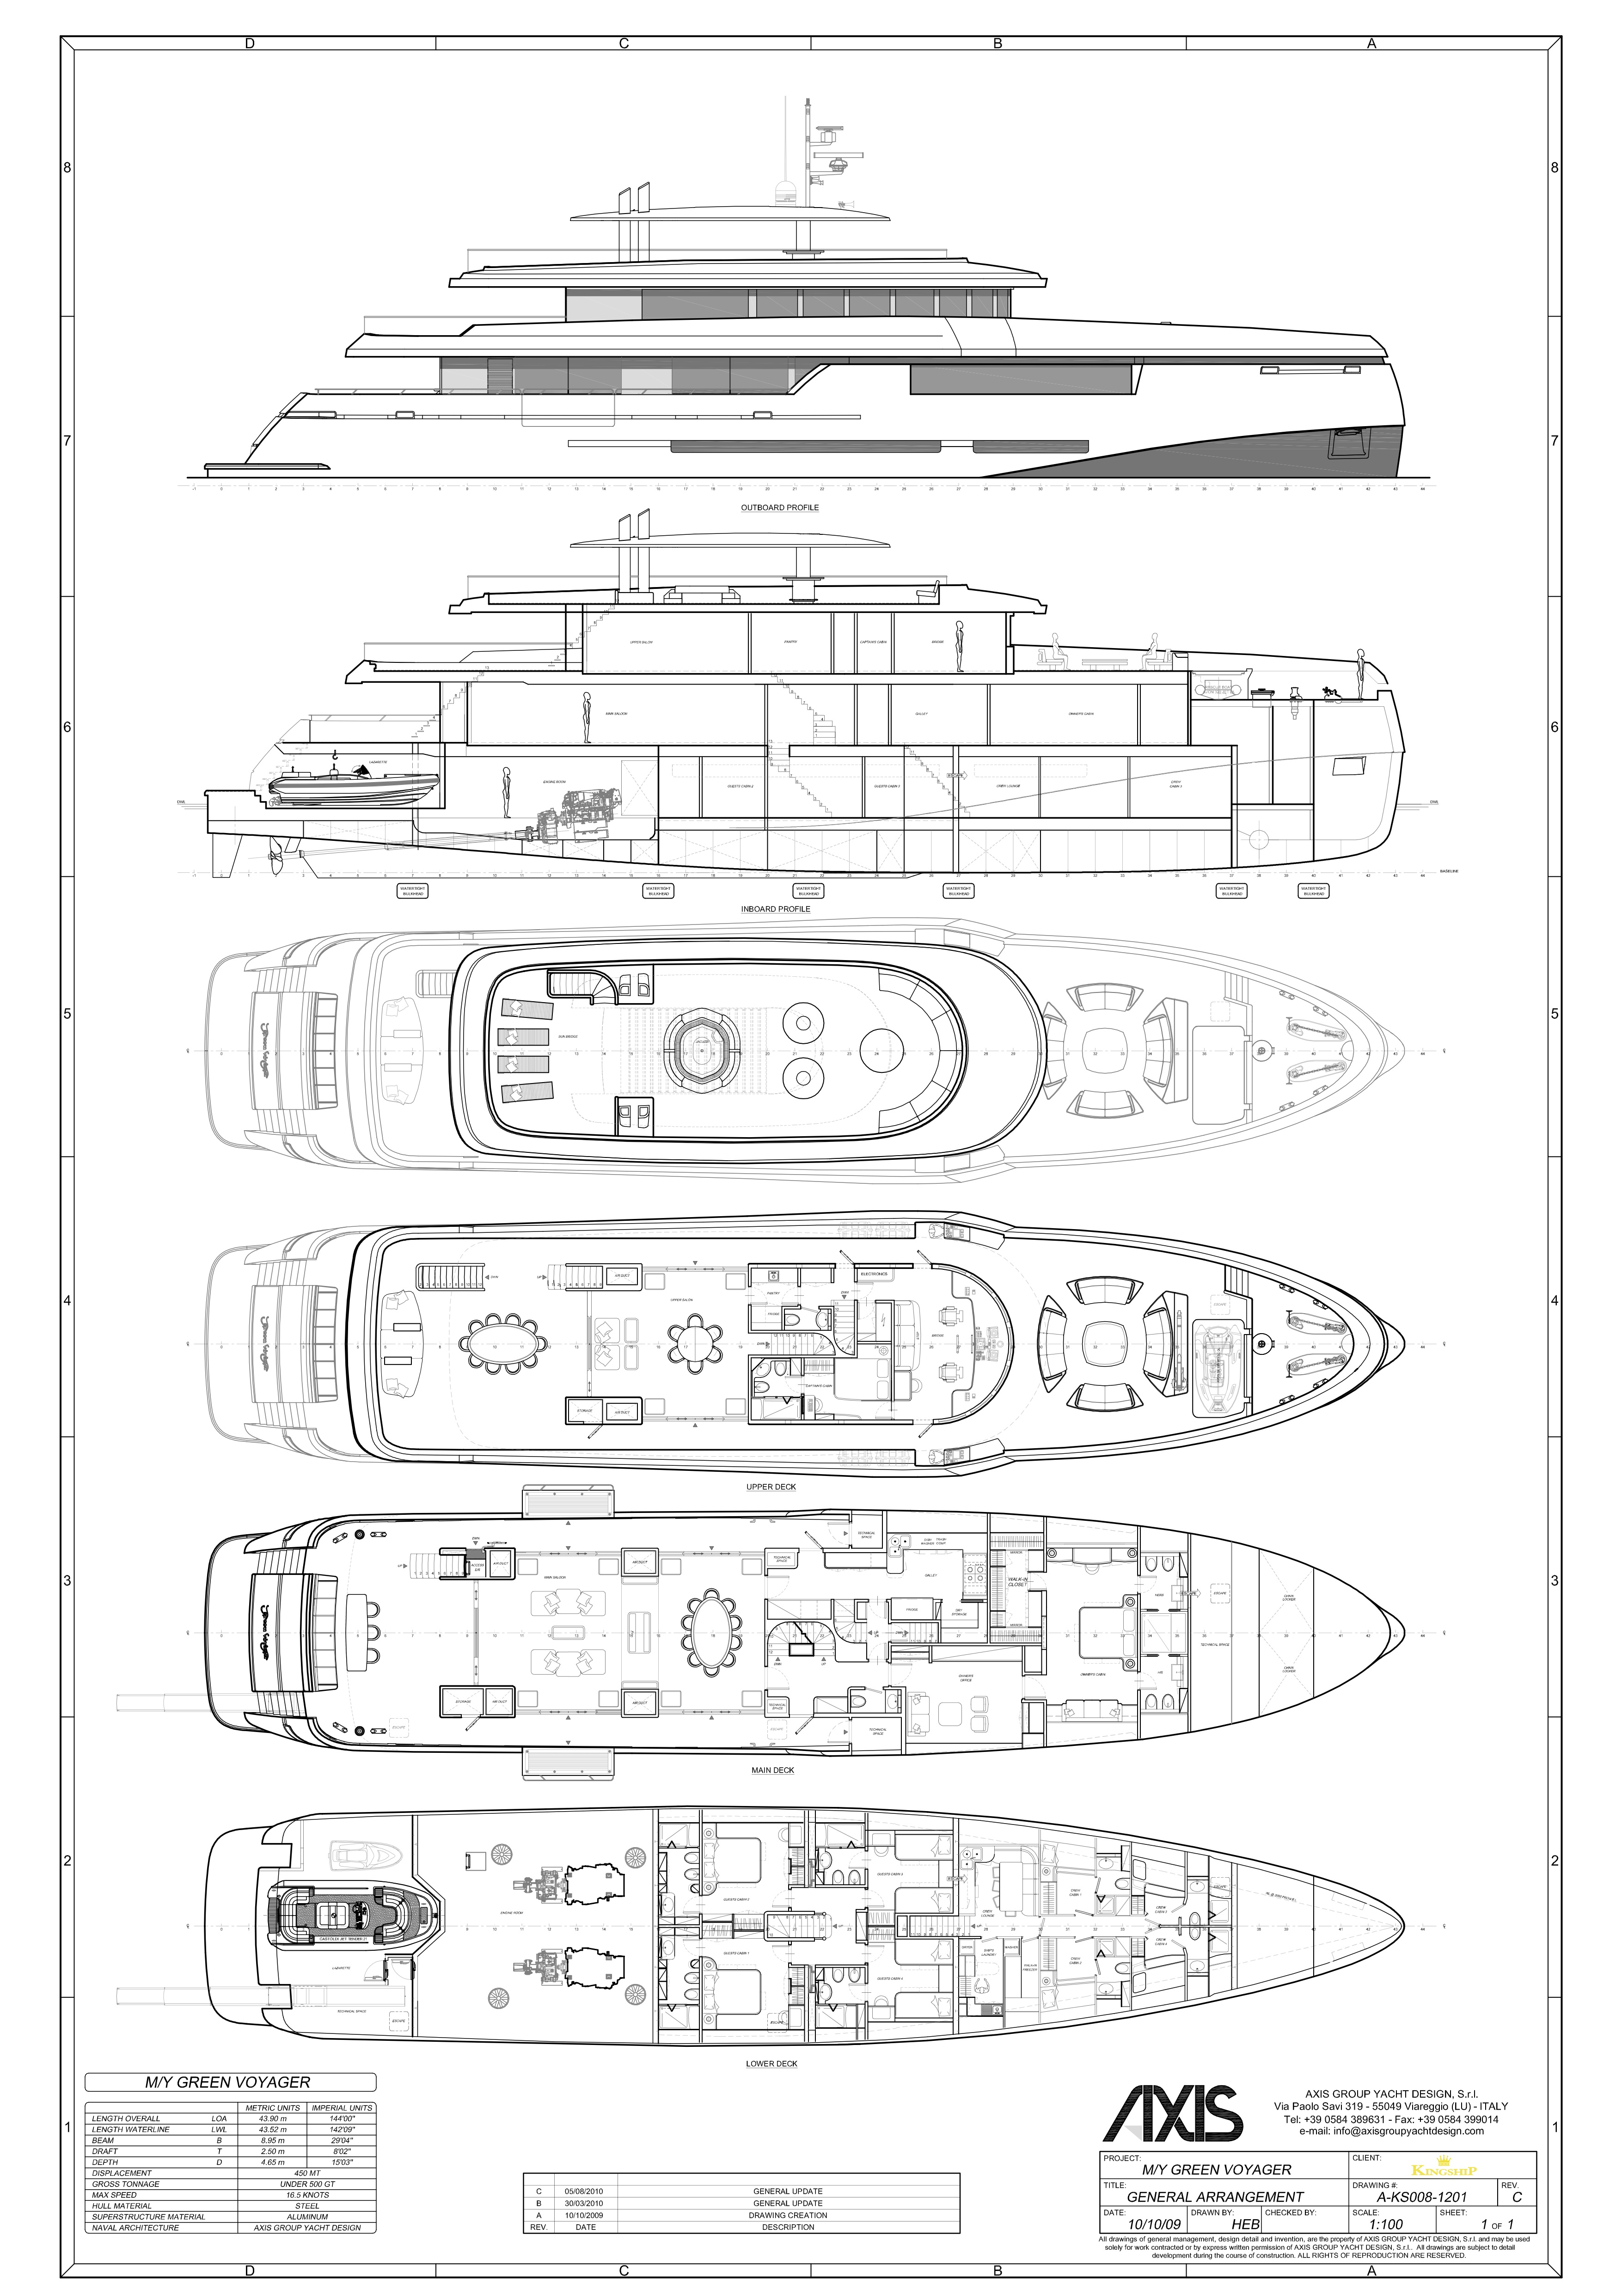 kingship sets new yacht design standard for 144 green voyager Top 10 Most Beautiful Islands green